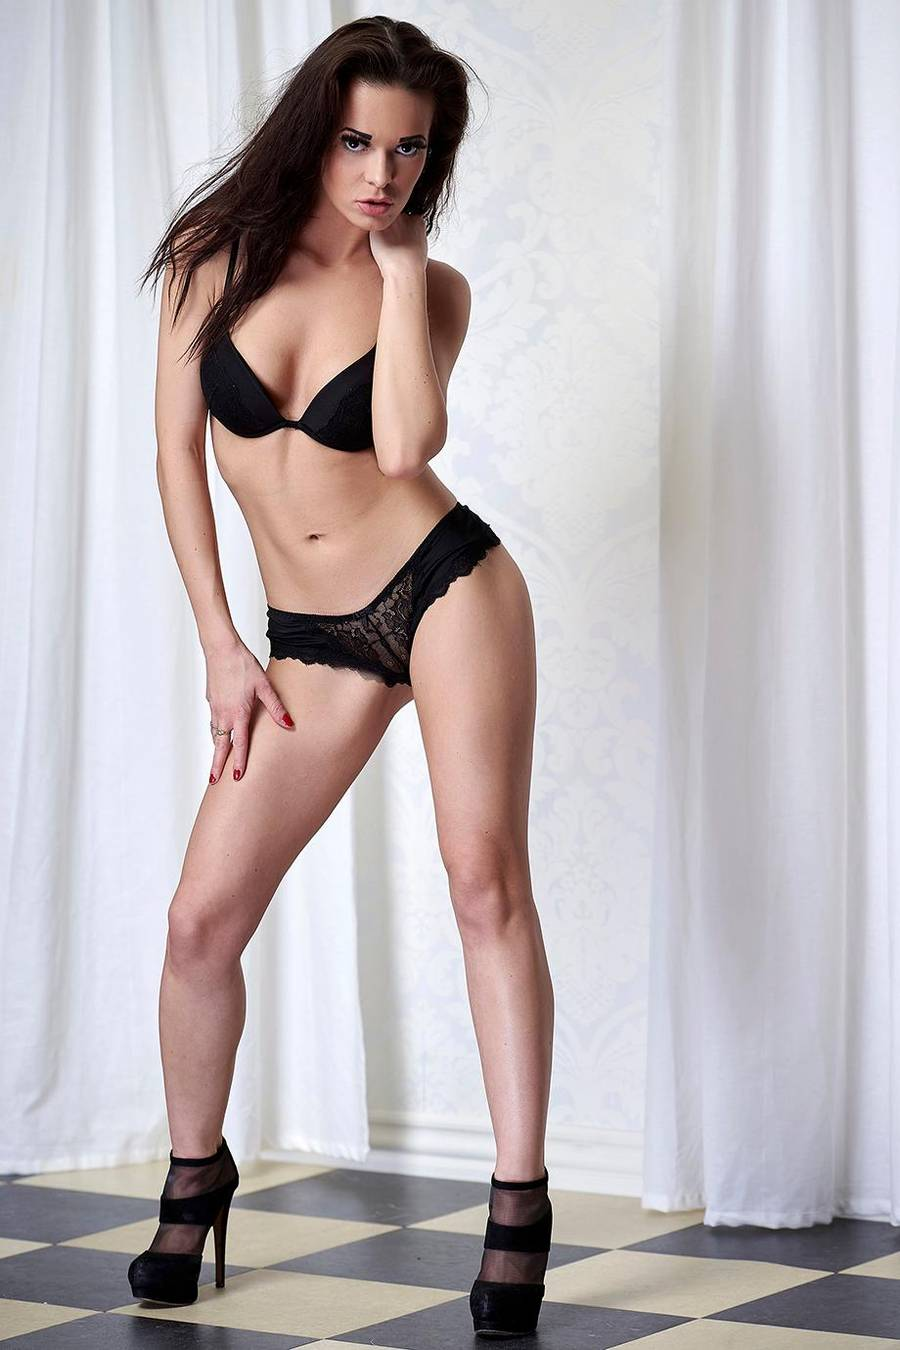 rakel liekki sex video st petersburg escorts